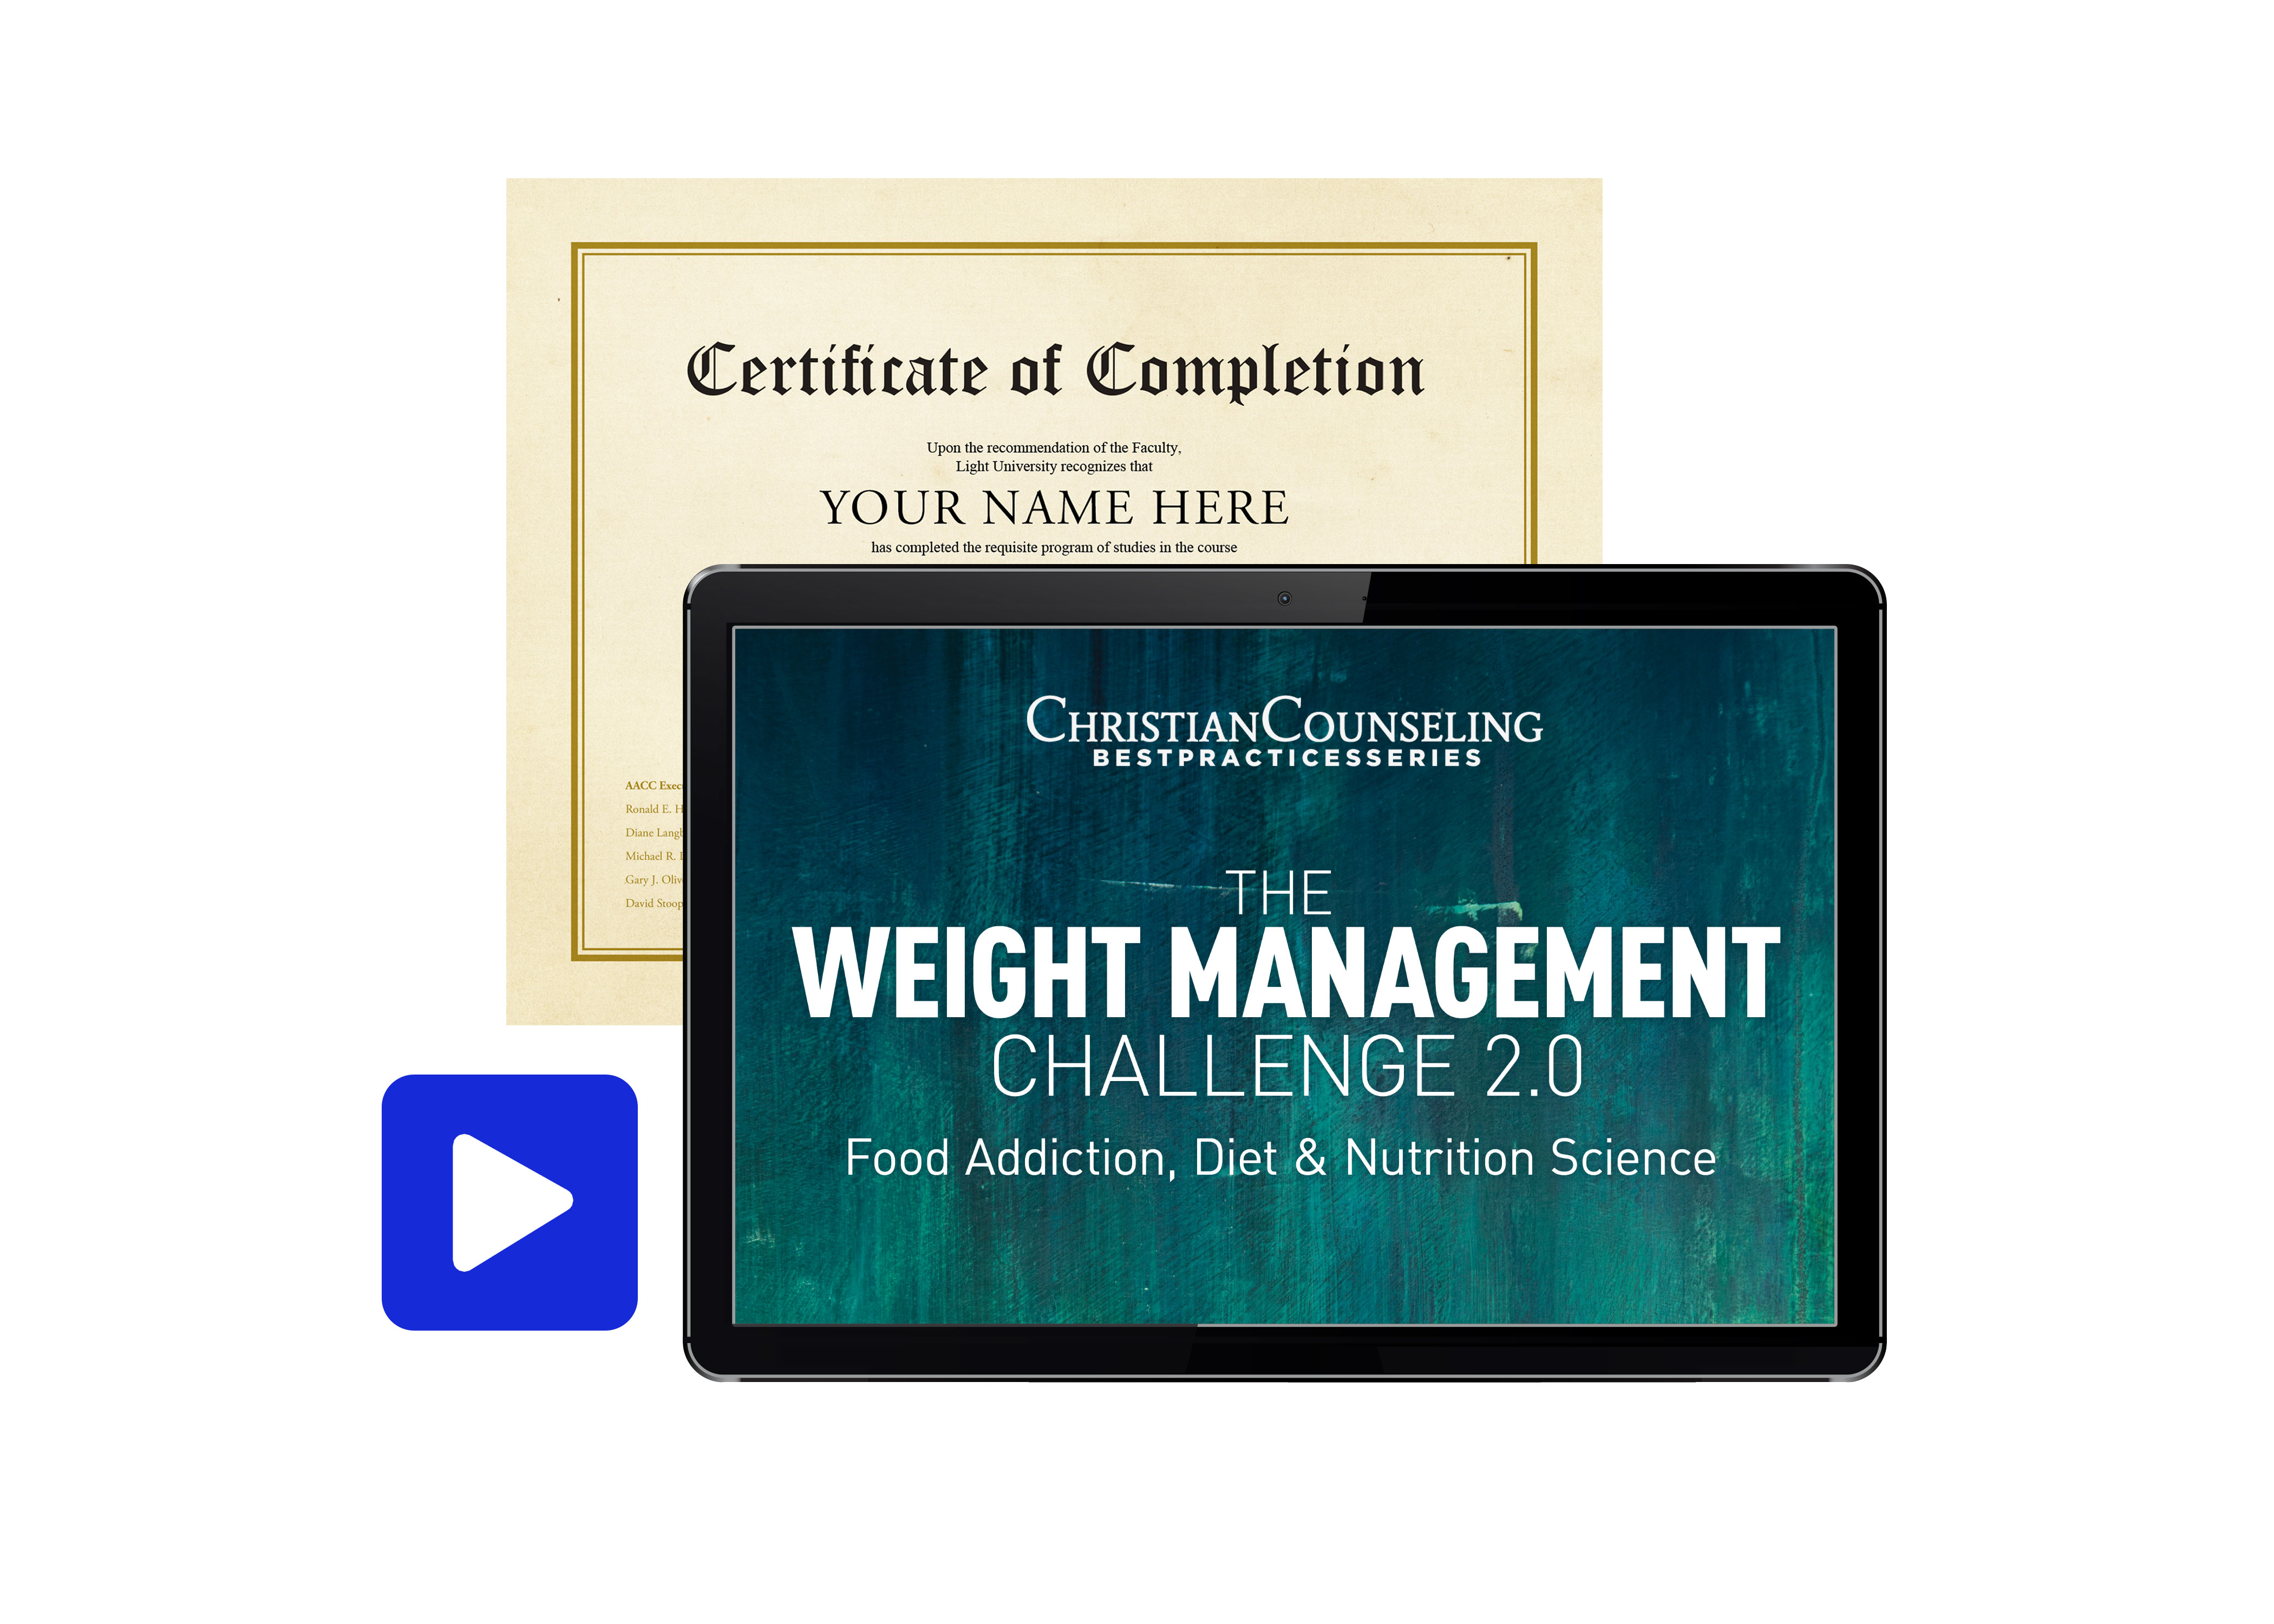 The Weight Management Challenge 2.0